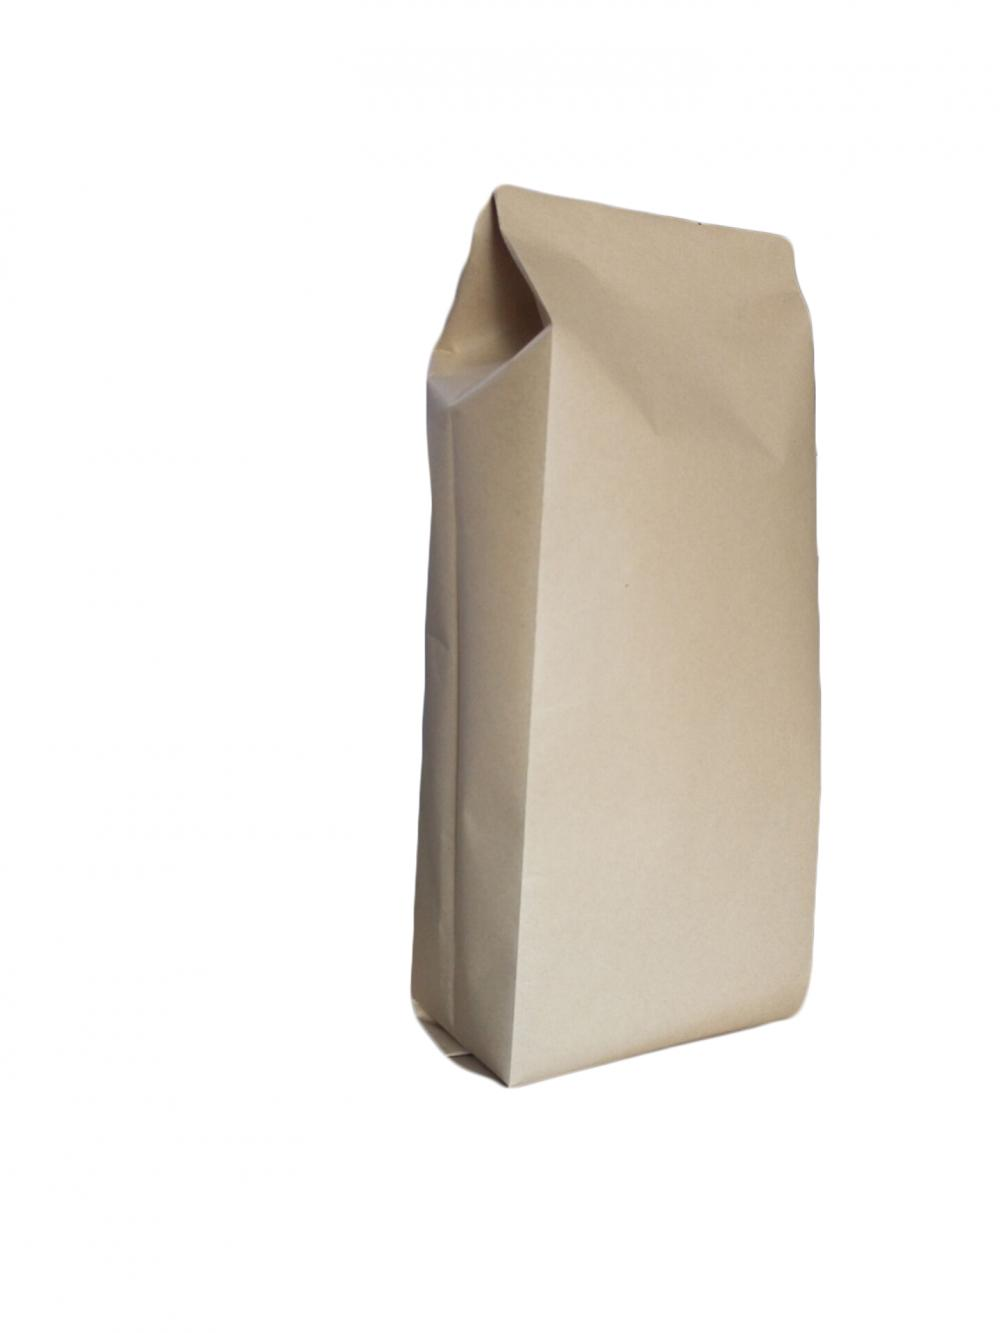 1000g Big kraft paper coffee packing organ pouch